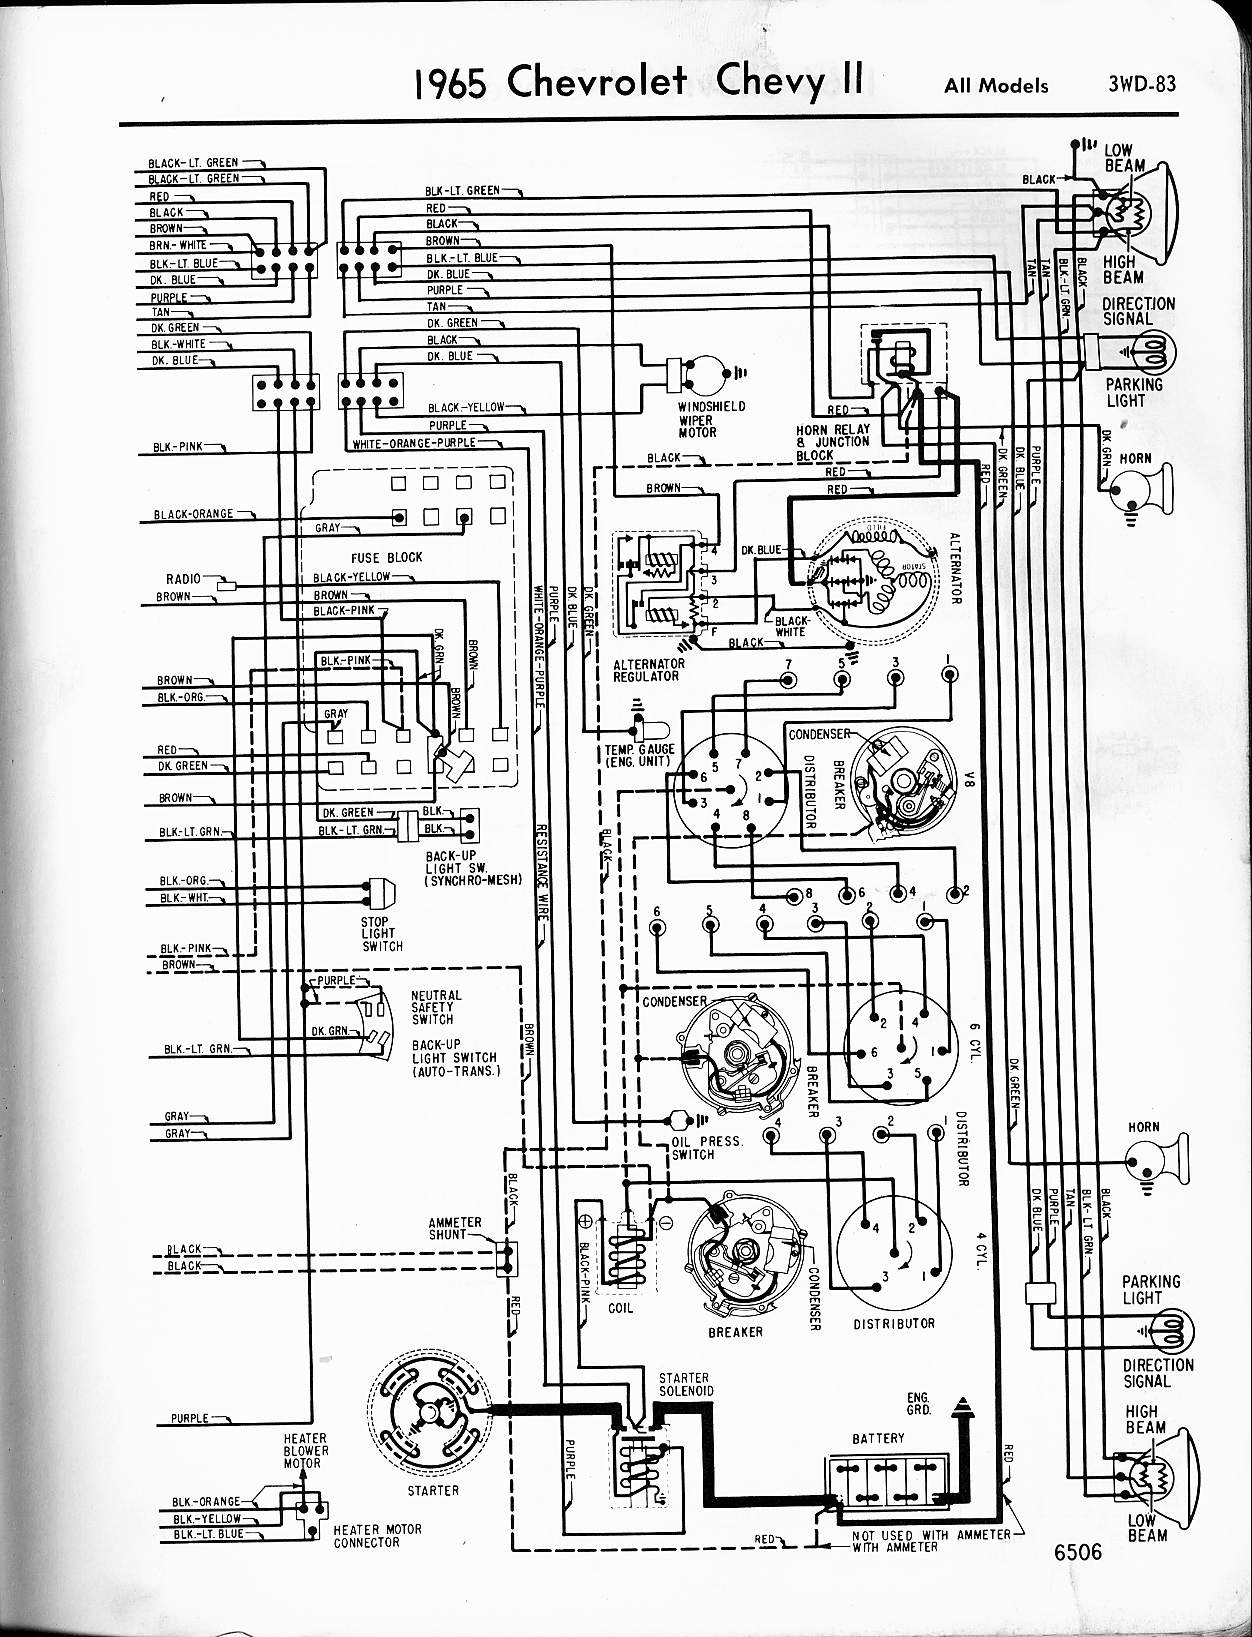 1970 chevrolet wiring diagram readingrat net on printable wiring diagram 65 chevelle